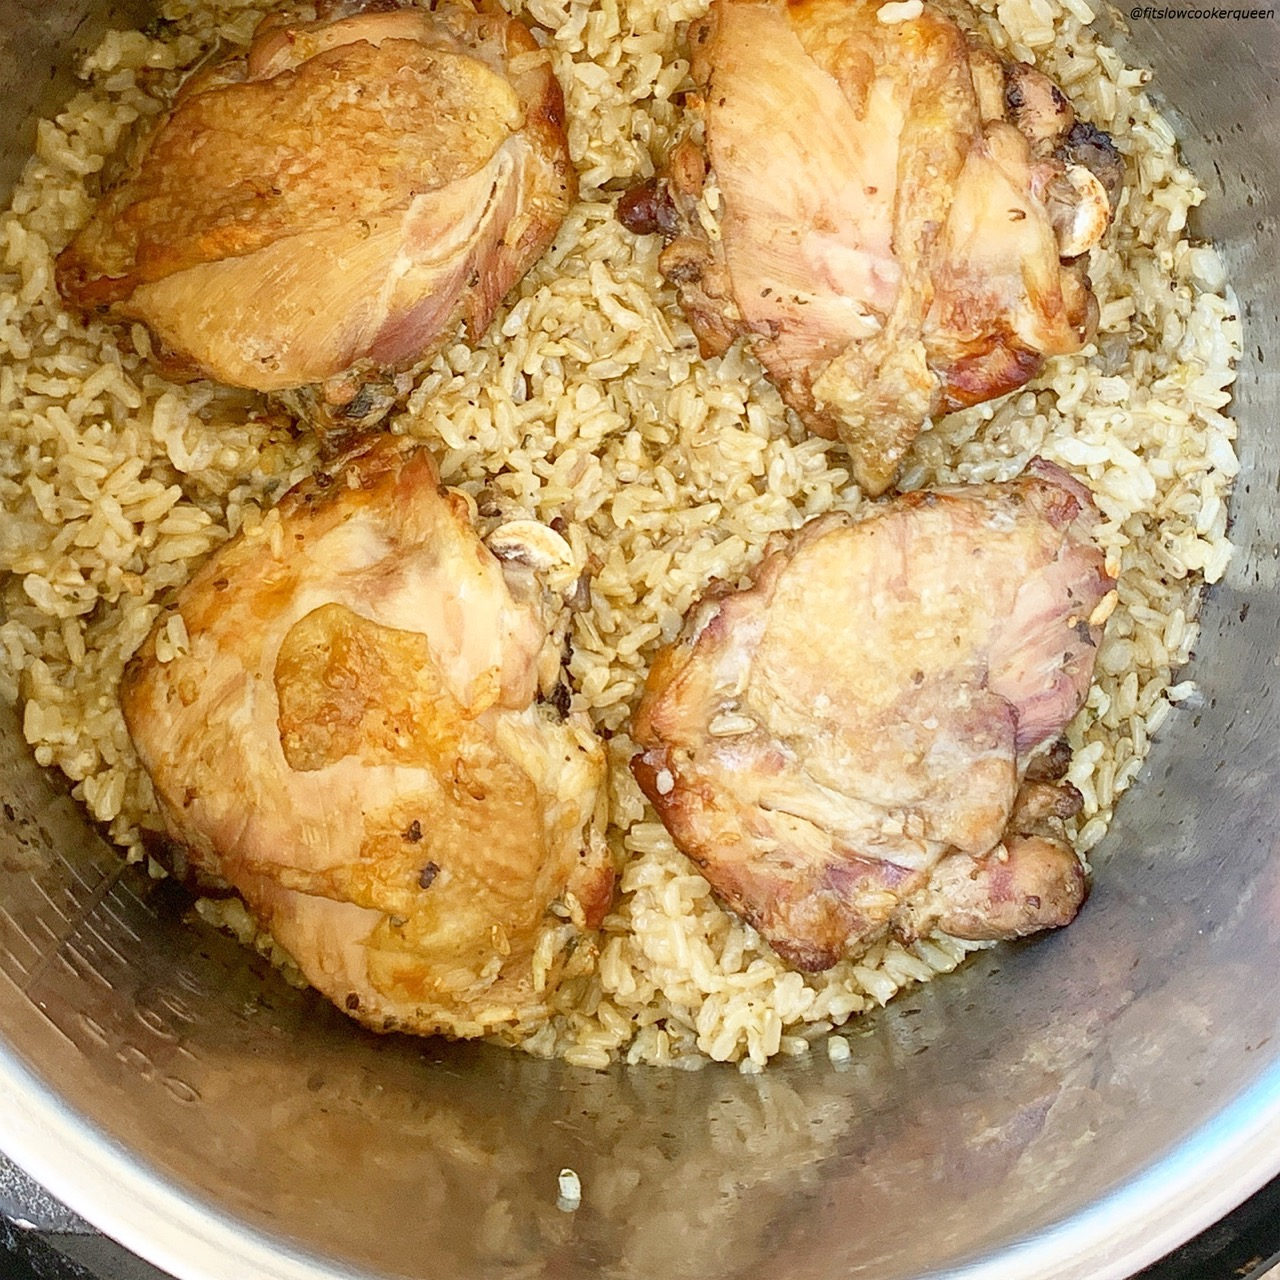 Chicken & rice cooked in one-pot makes takes the fuss out of family dinner. Cook this easy recipe your slow cooker or electric pressure cooker (Instant Pot).